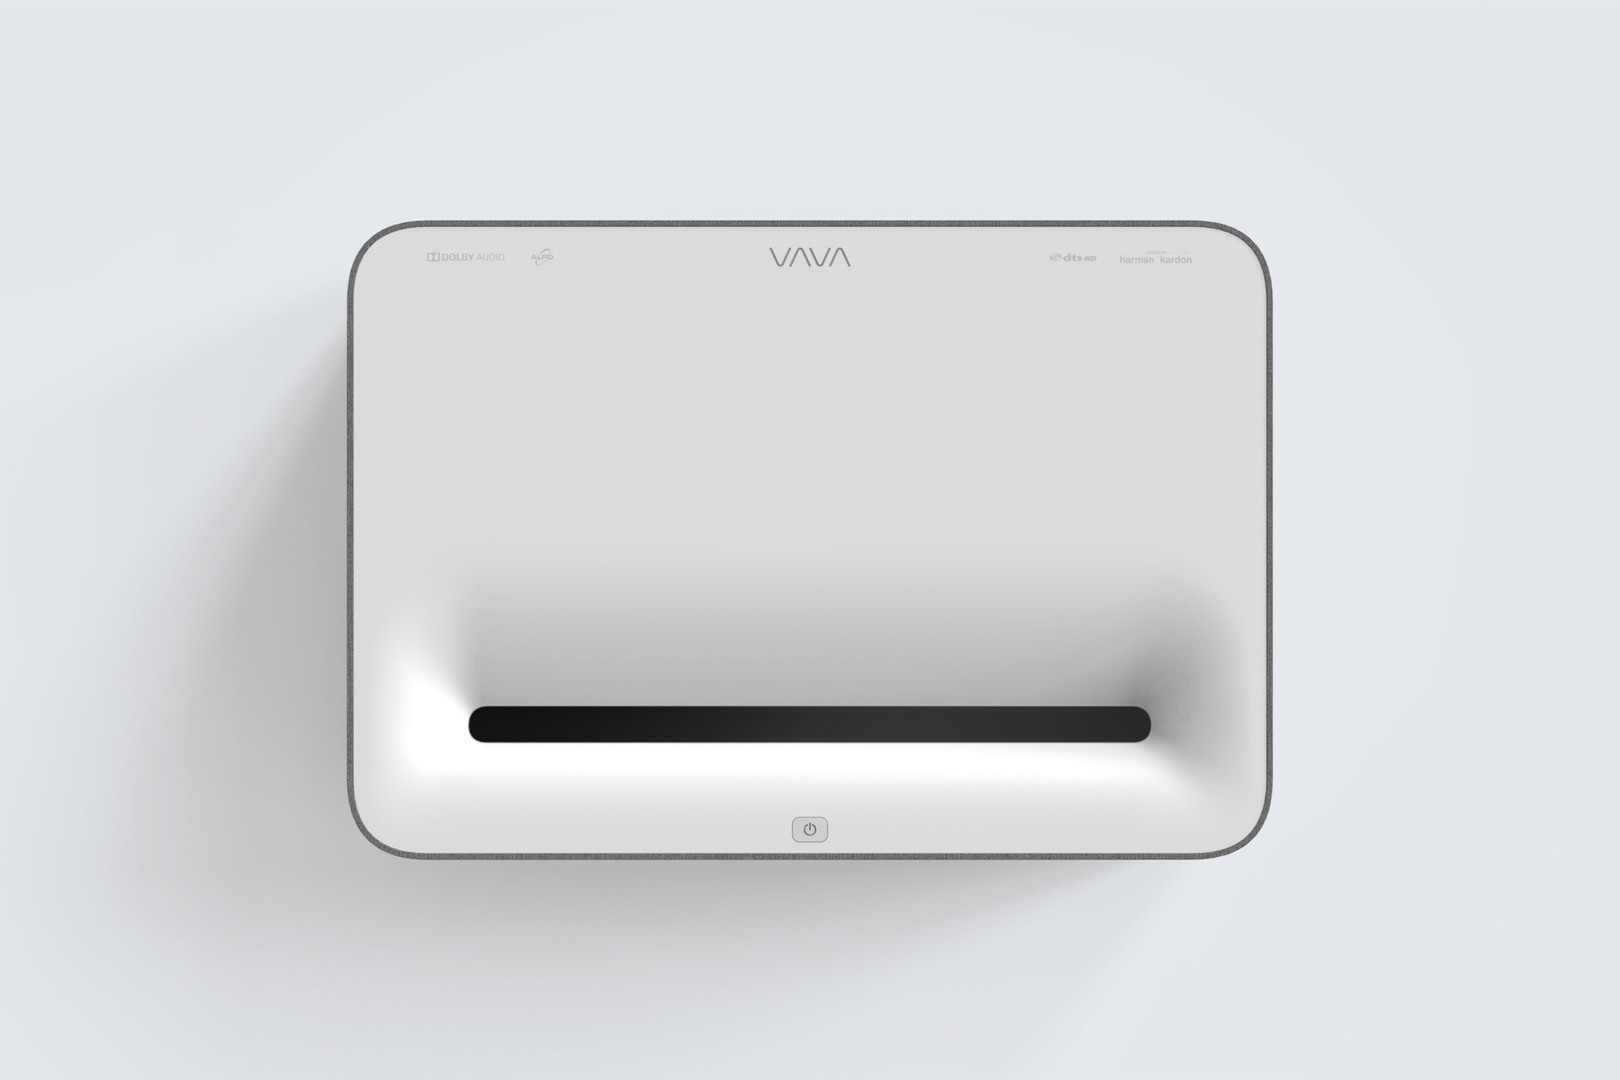 VAVA-Projector not supported